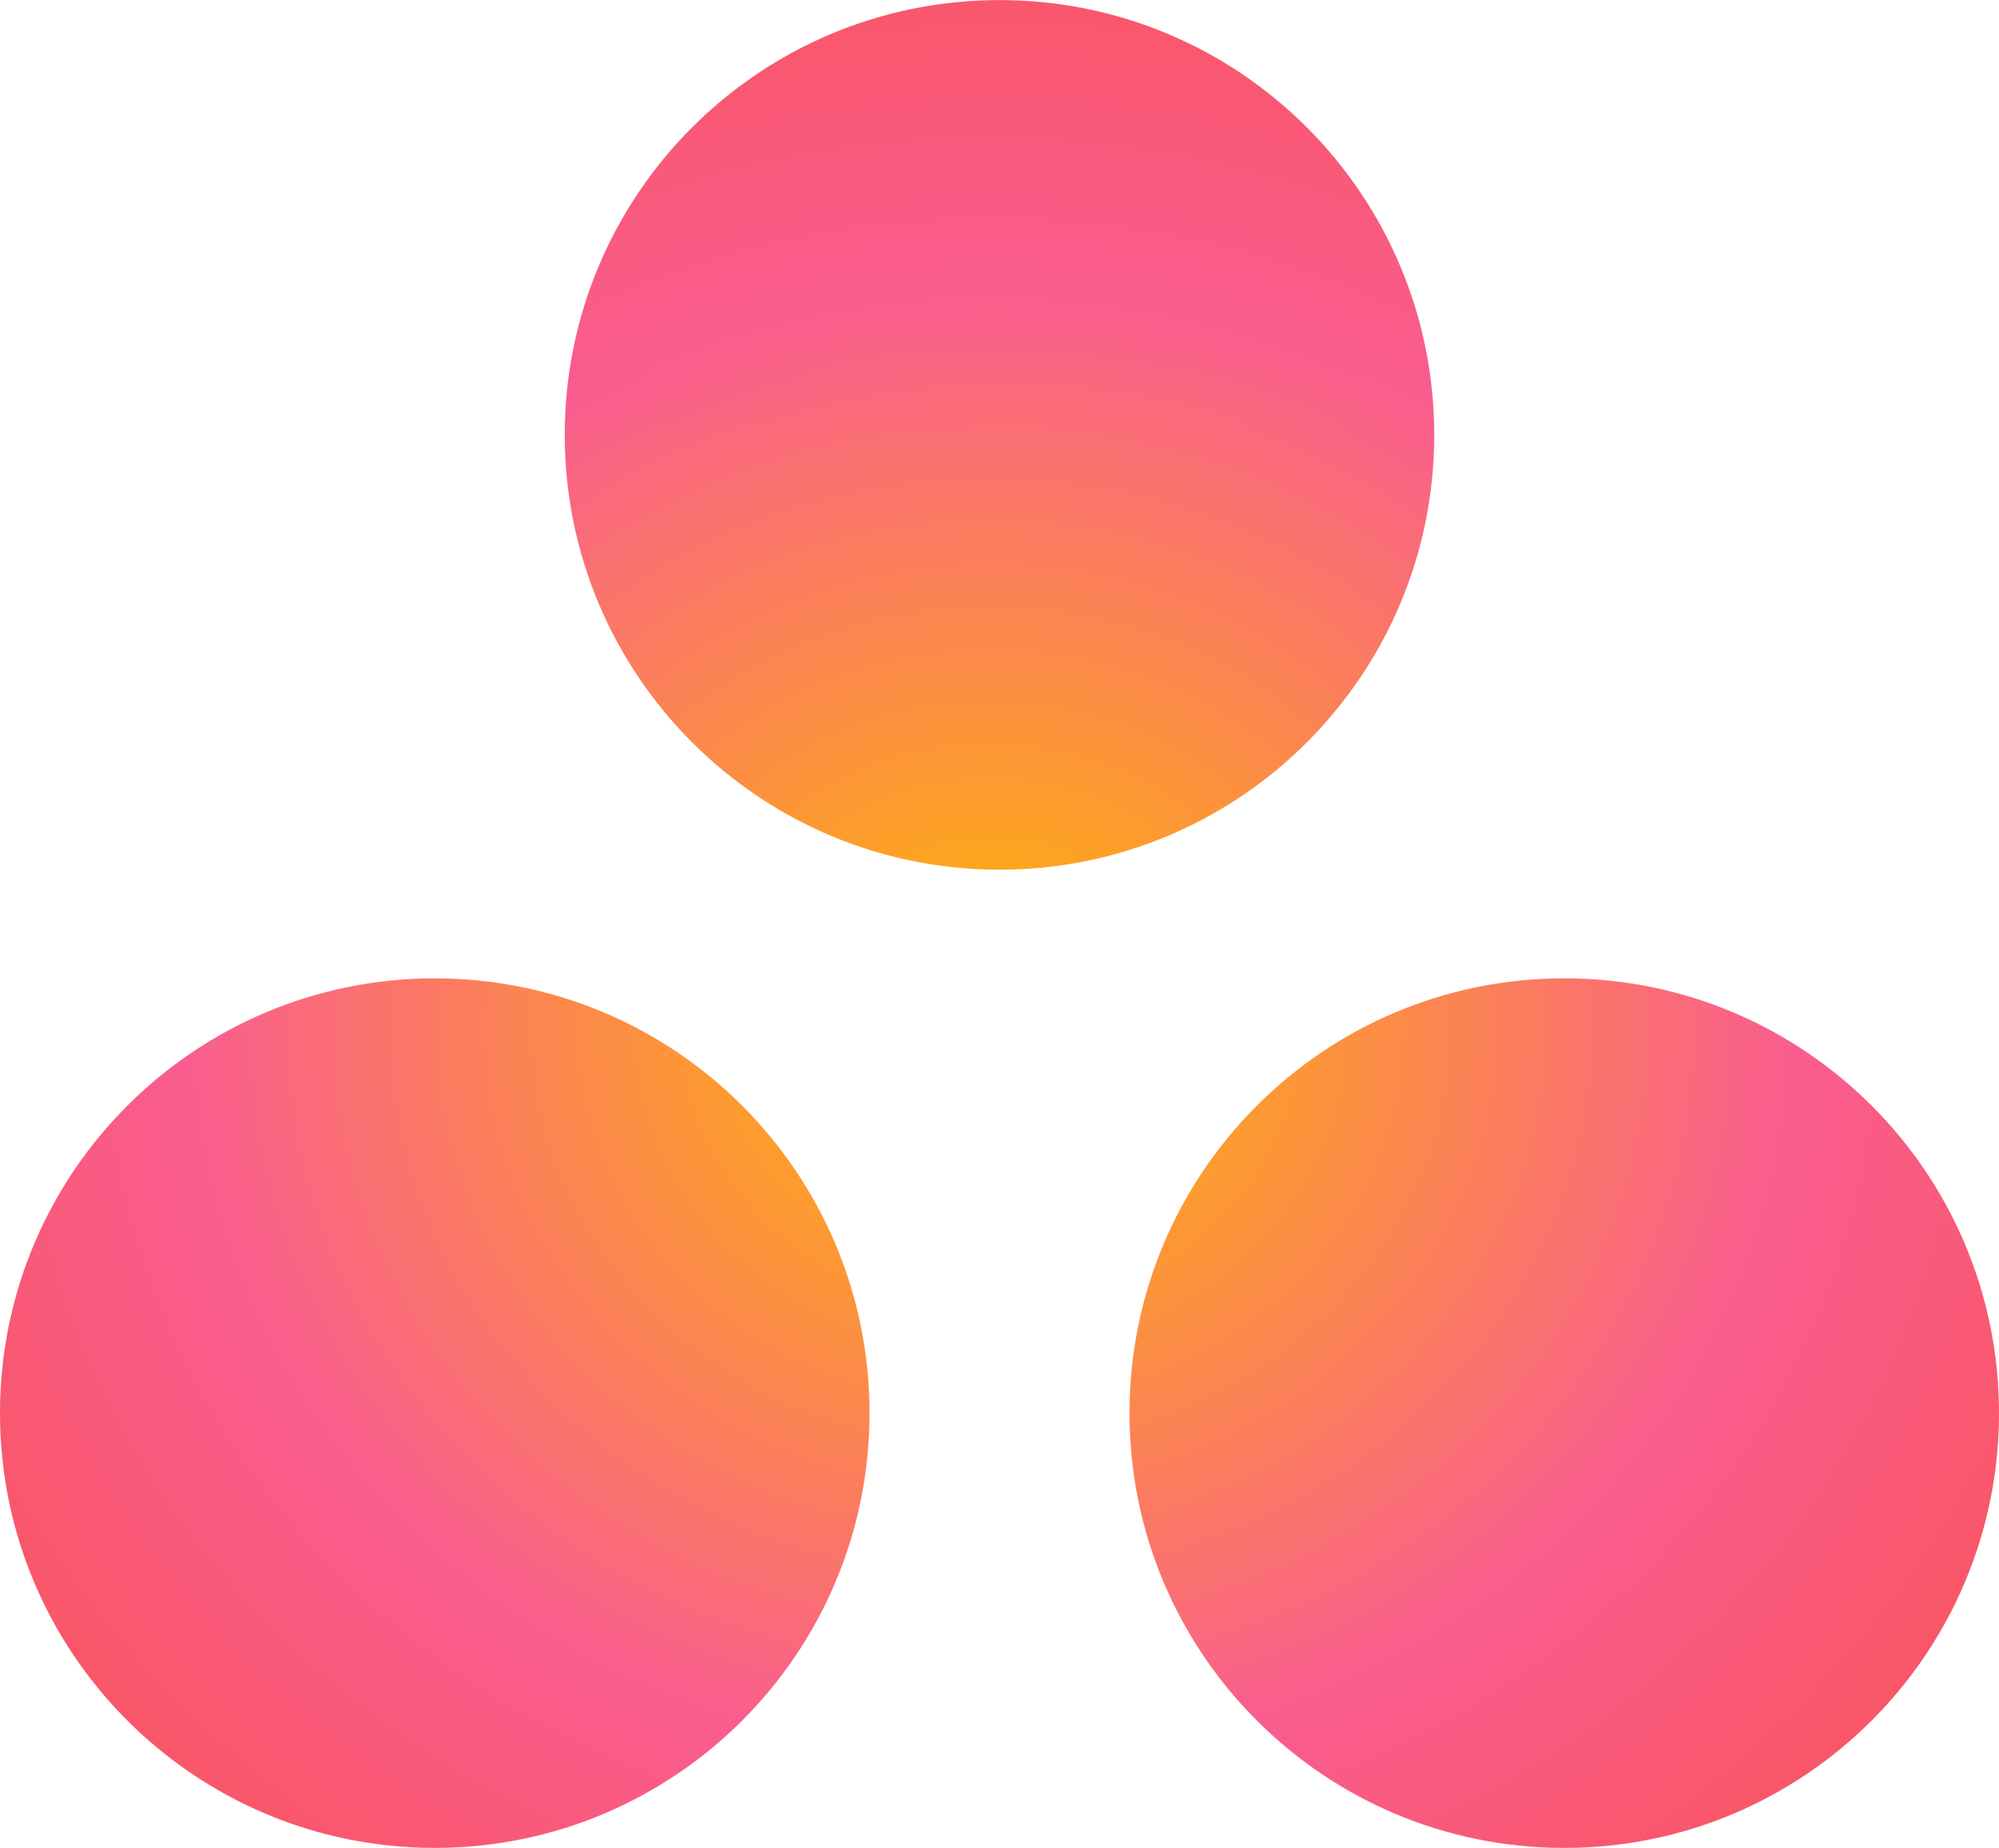 Asana Logo PNG Transparent & SVG Vector.